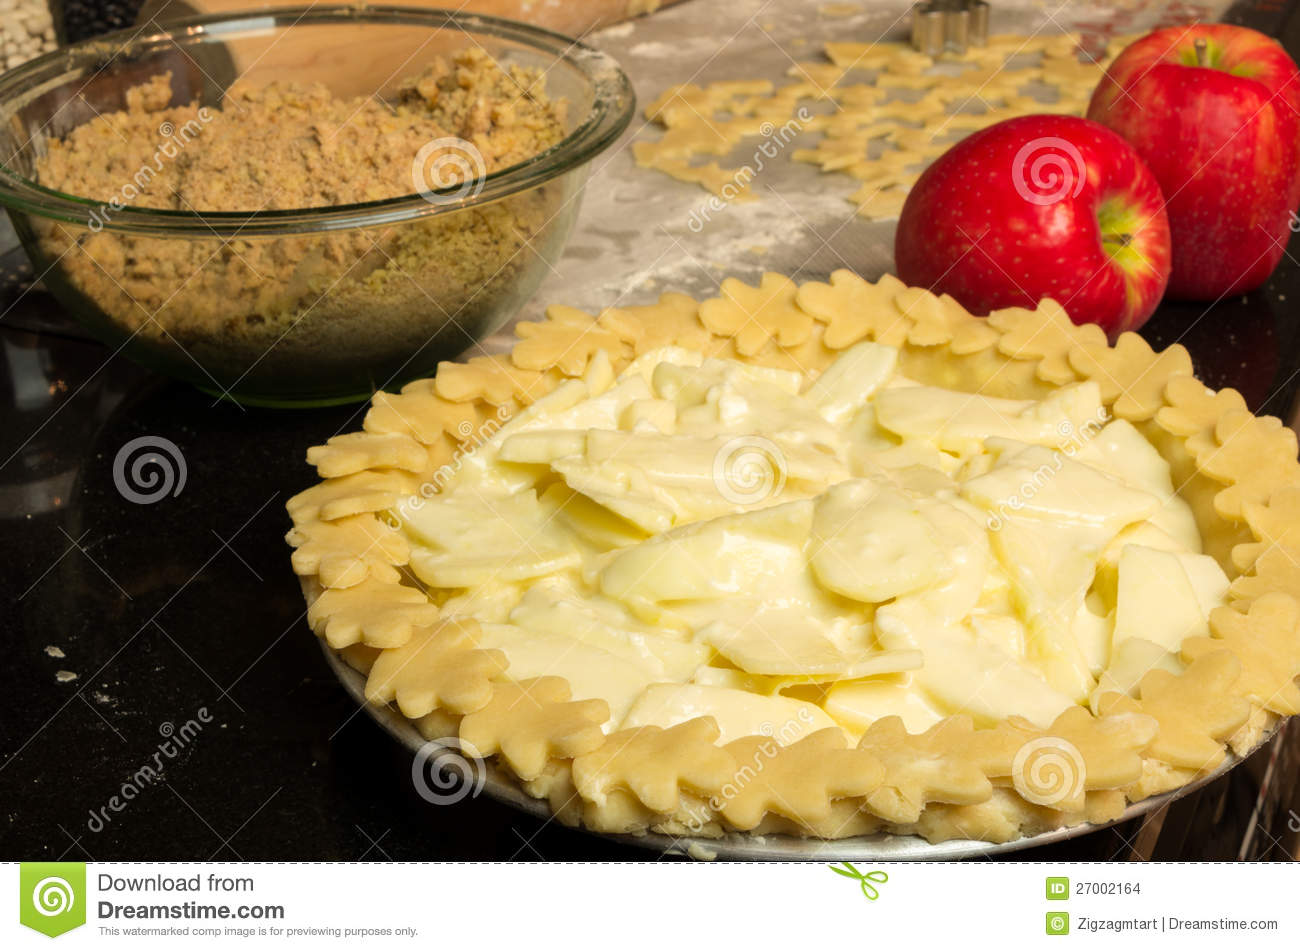 how to cook apple pie in oven